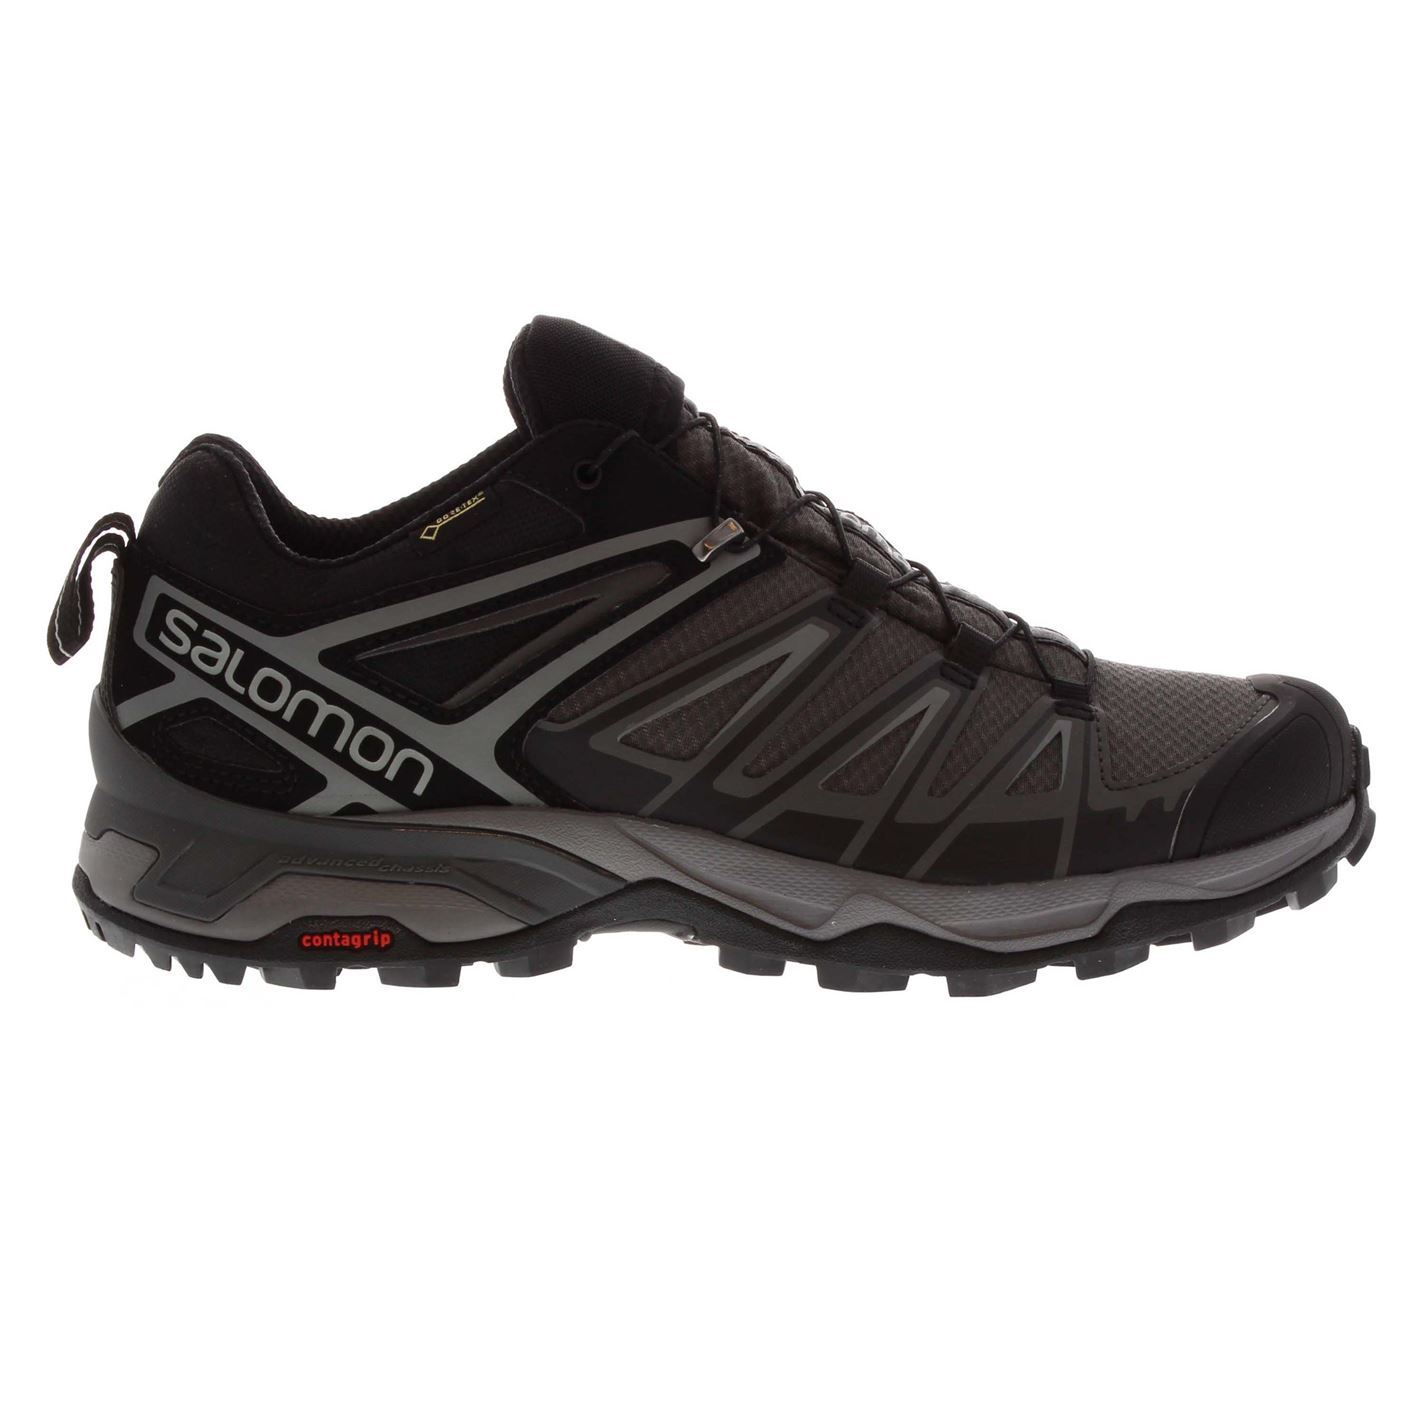 salomon men's x ultra 3 gtx hiking shoes review